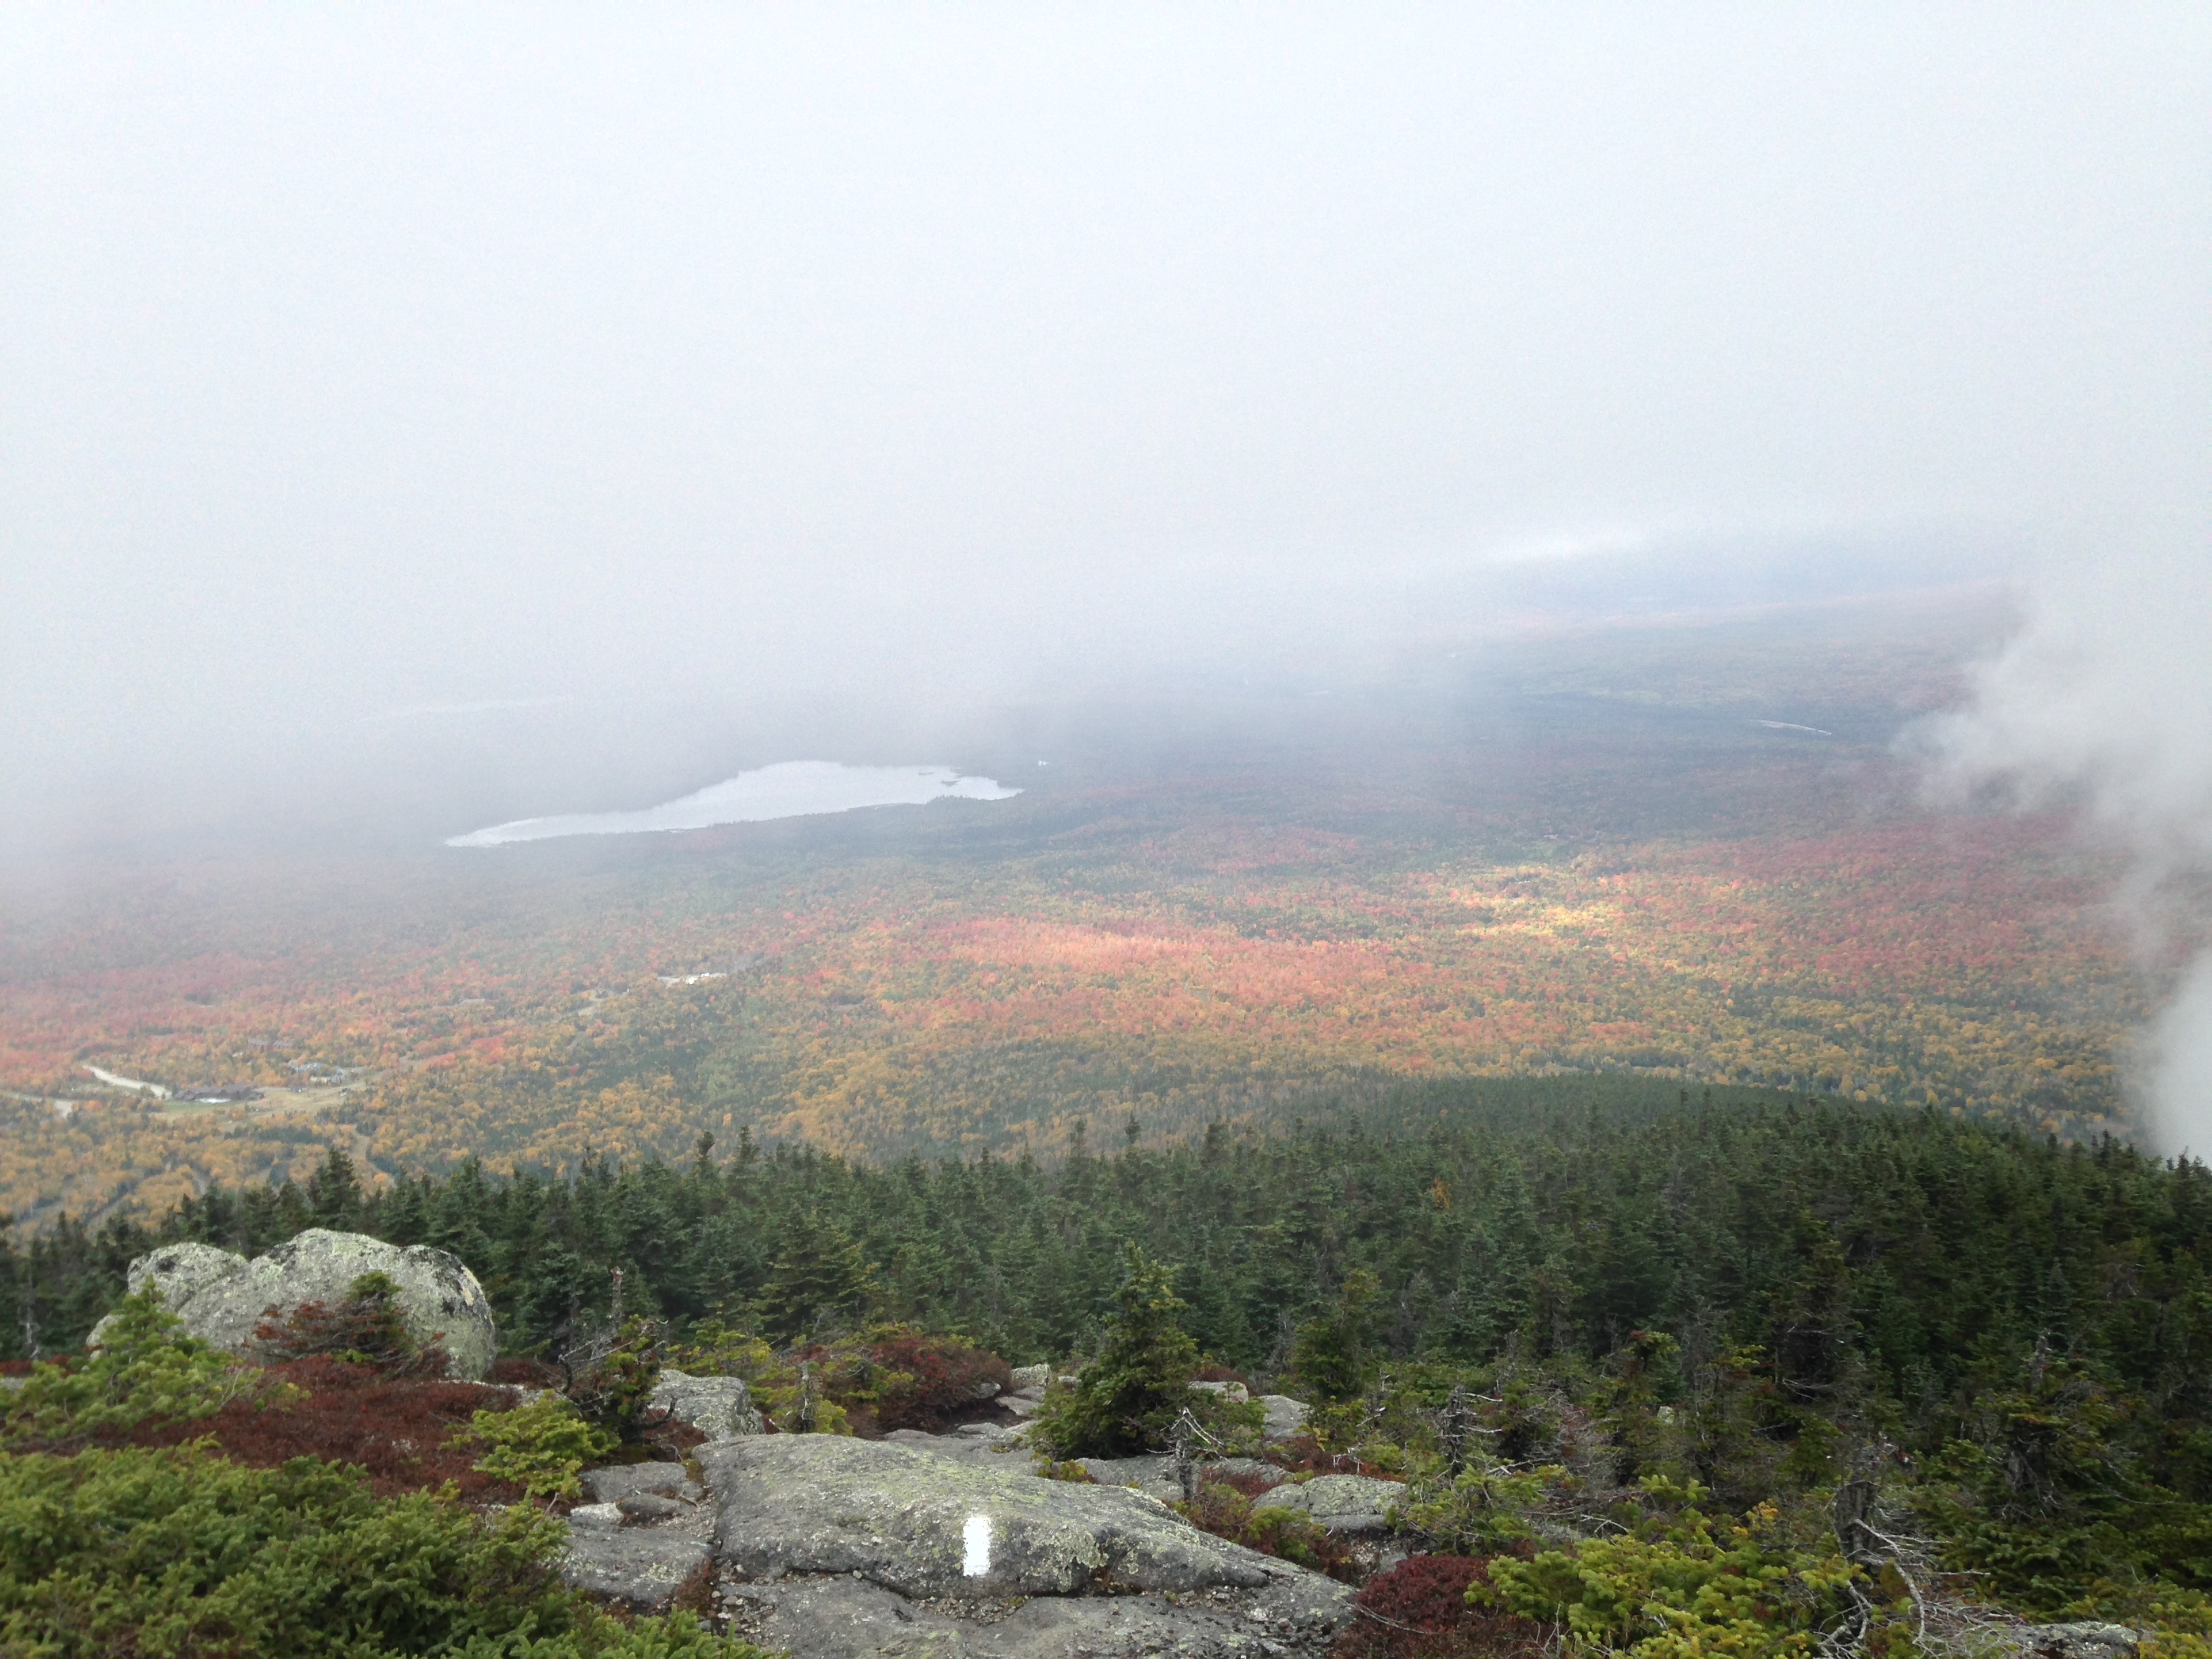 A tantalizing glimpse of view near the top of The Horn.